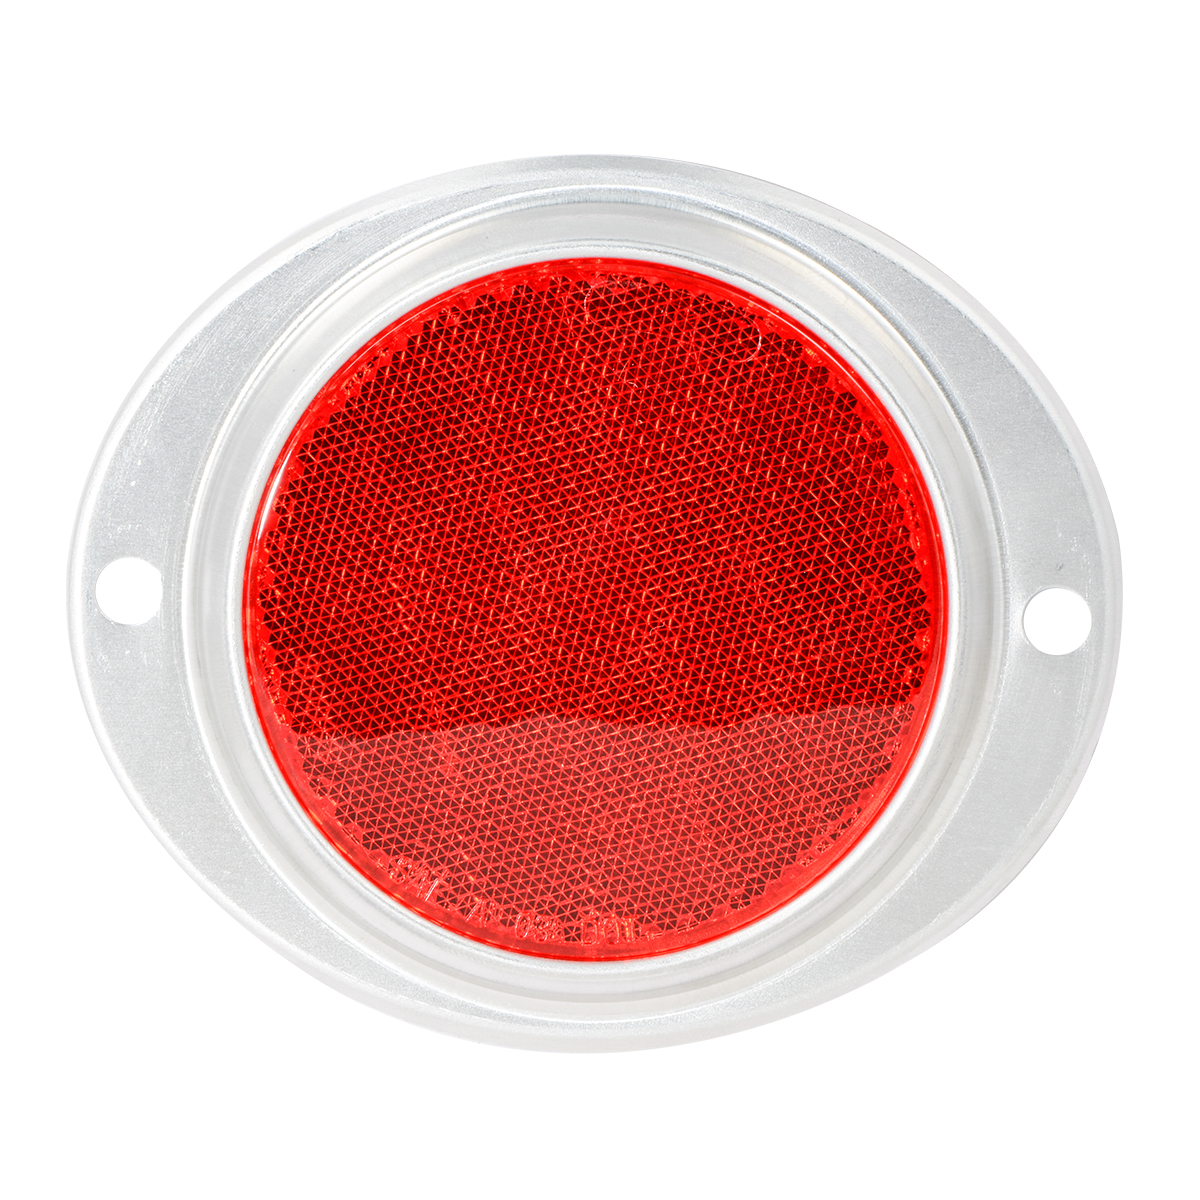 "80816 Red 3"" Round Reflector w/ Aluminum 2 Hole Screw Mount Base"